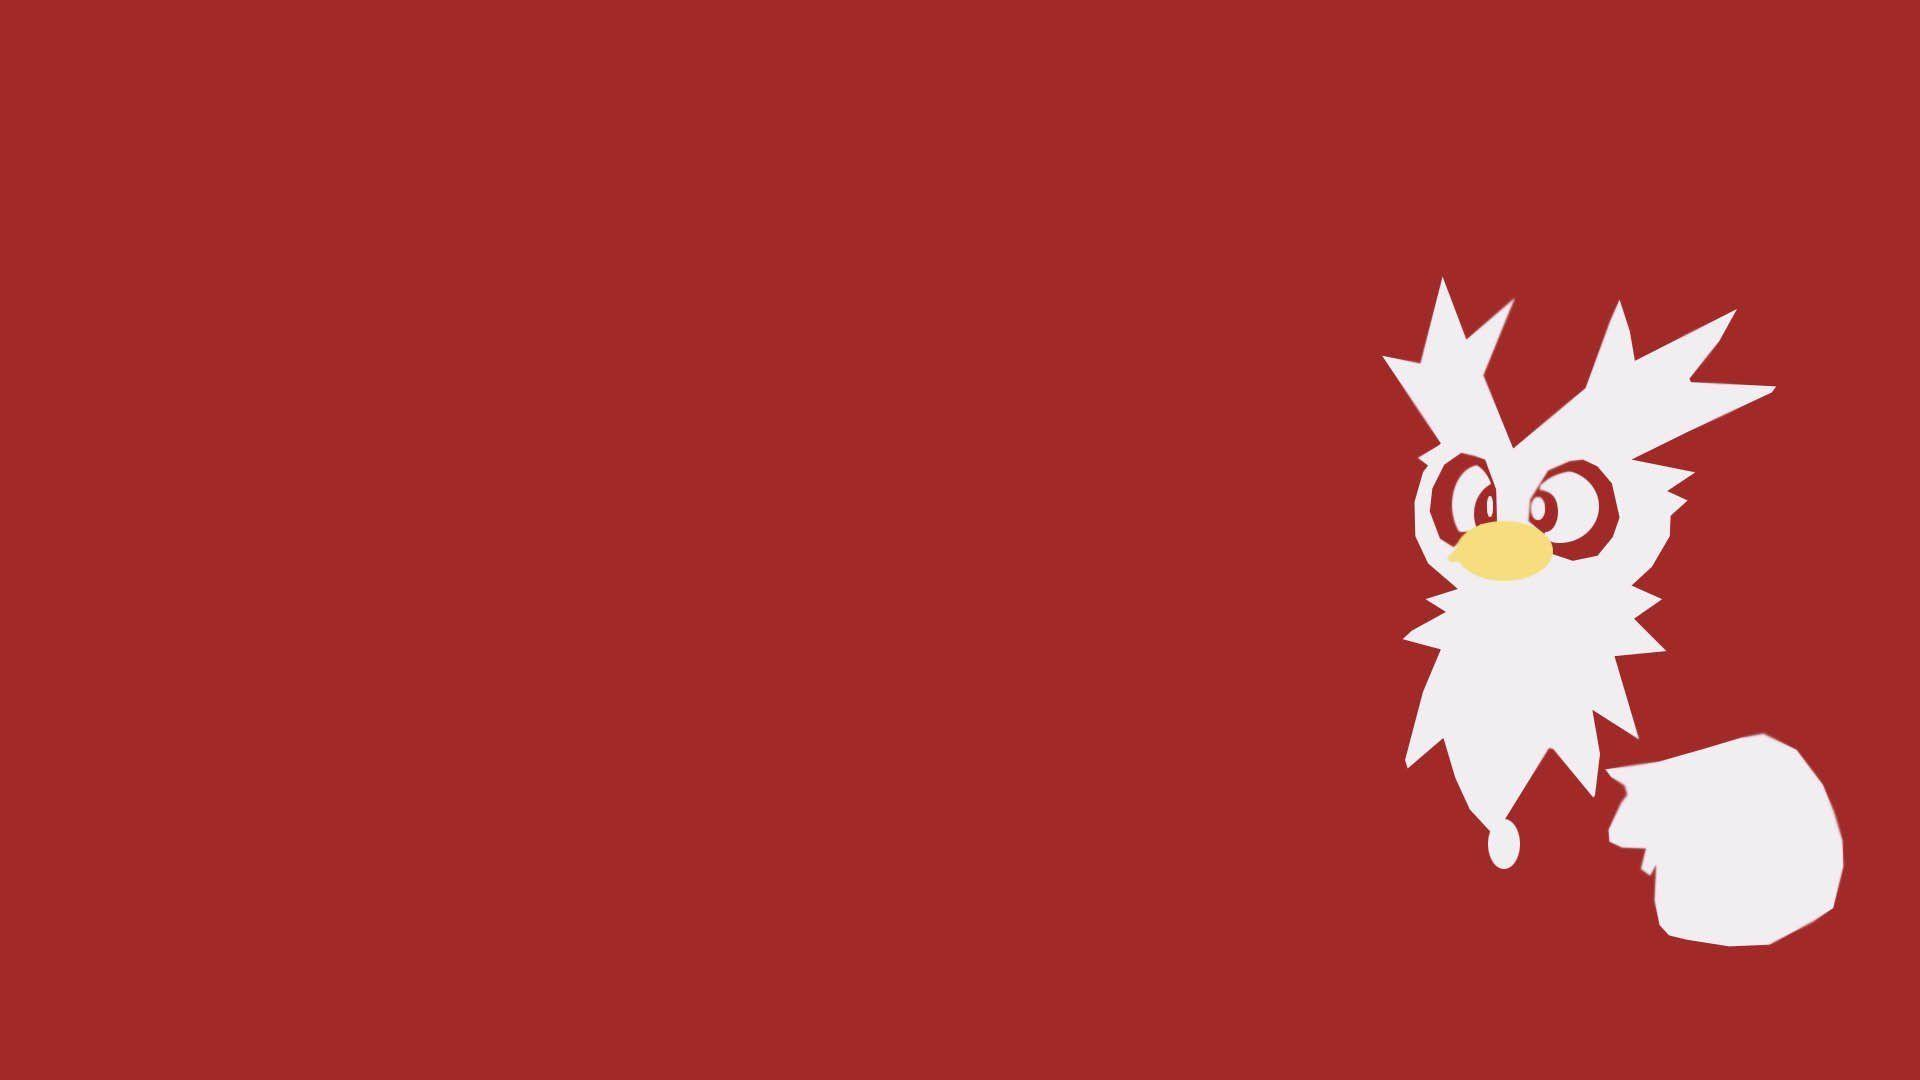 Delibird Wallpaper by Glench on DeviantArt | All Wallpapers ...